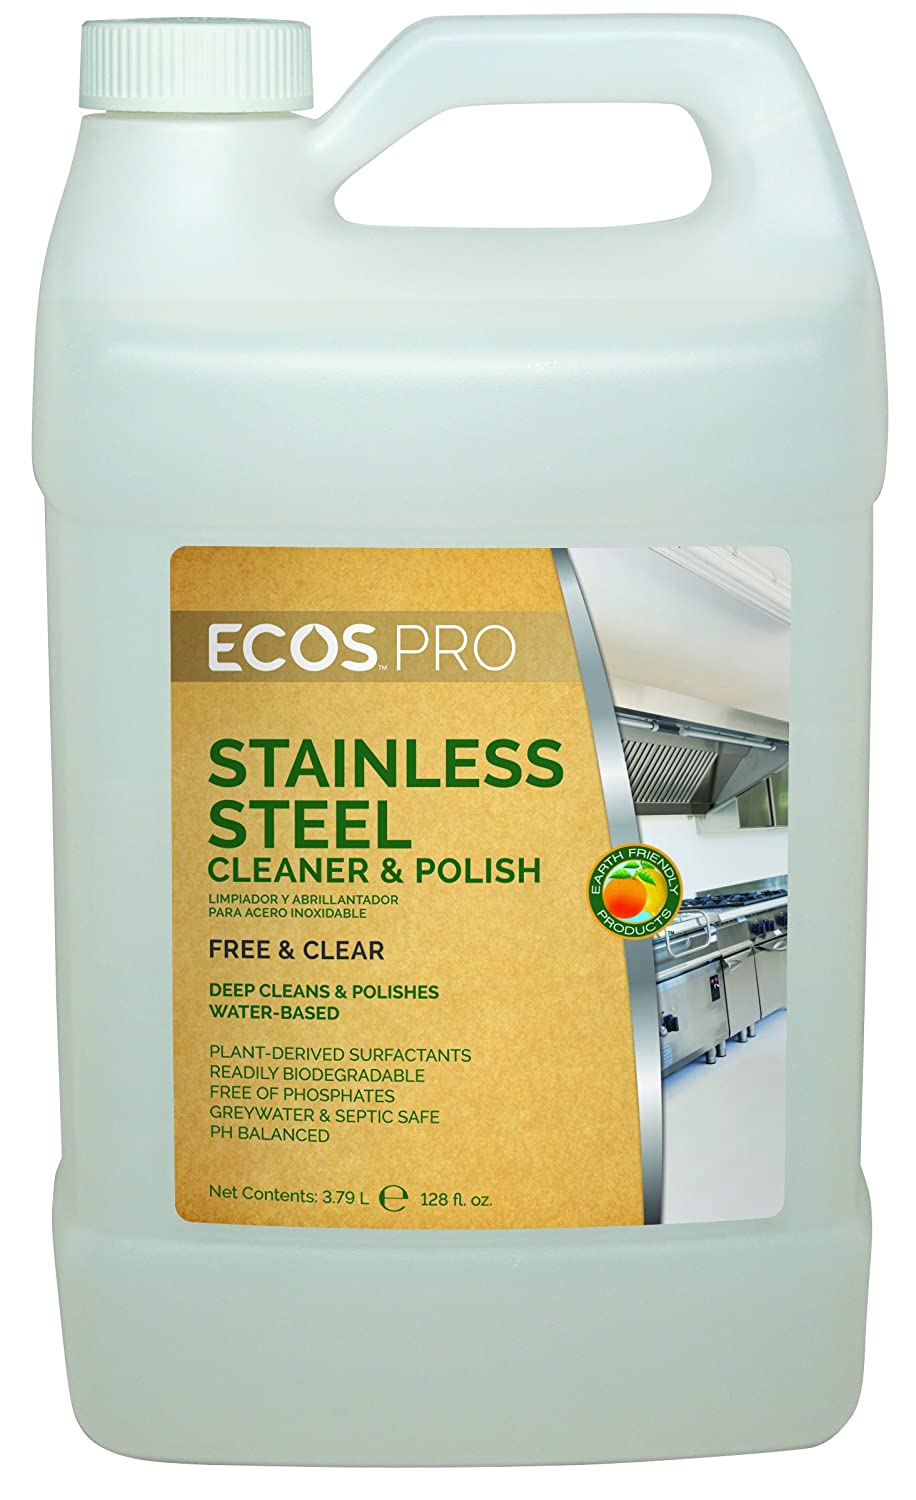 Earth Friendly Products Proline PL9330/04 Stainless Steel Cleaner and Polish, 1 gallon Bottles (Case of 4)